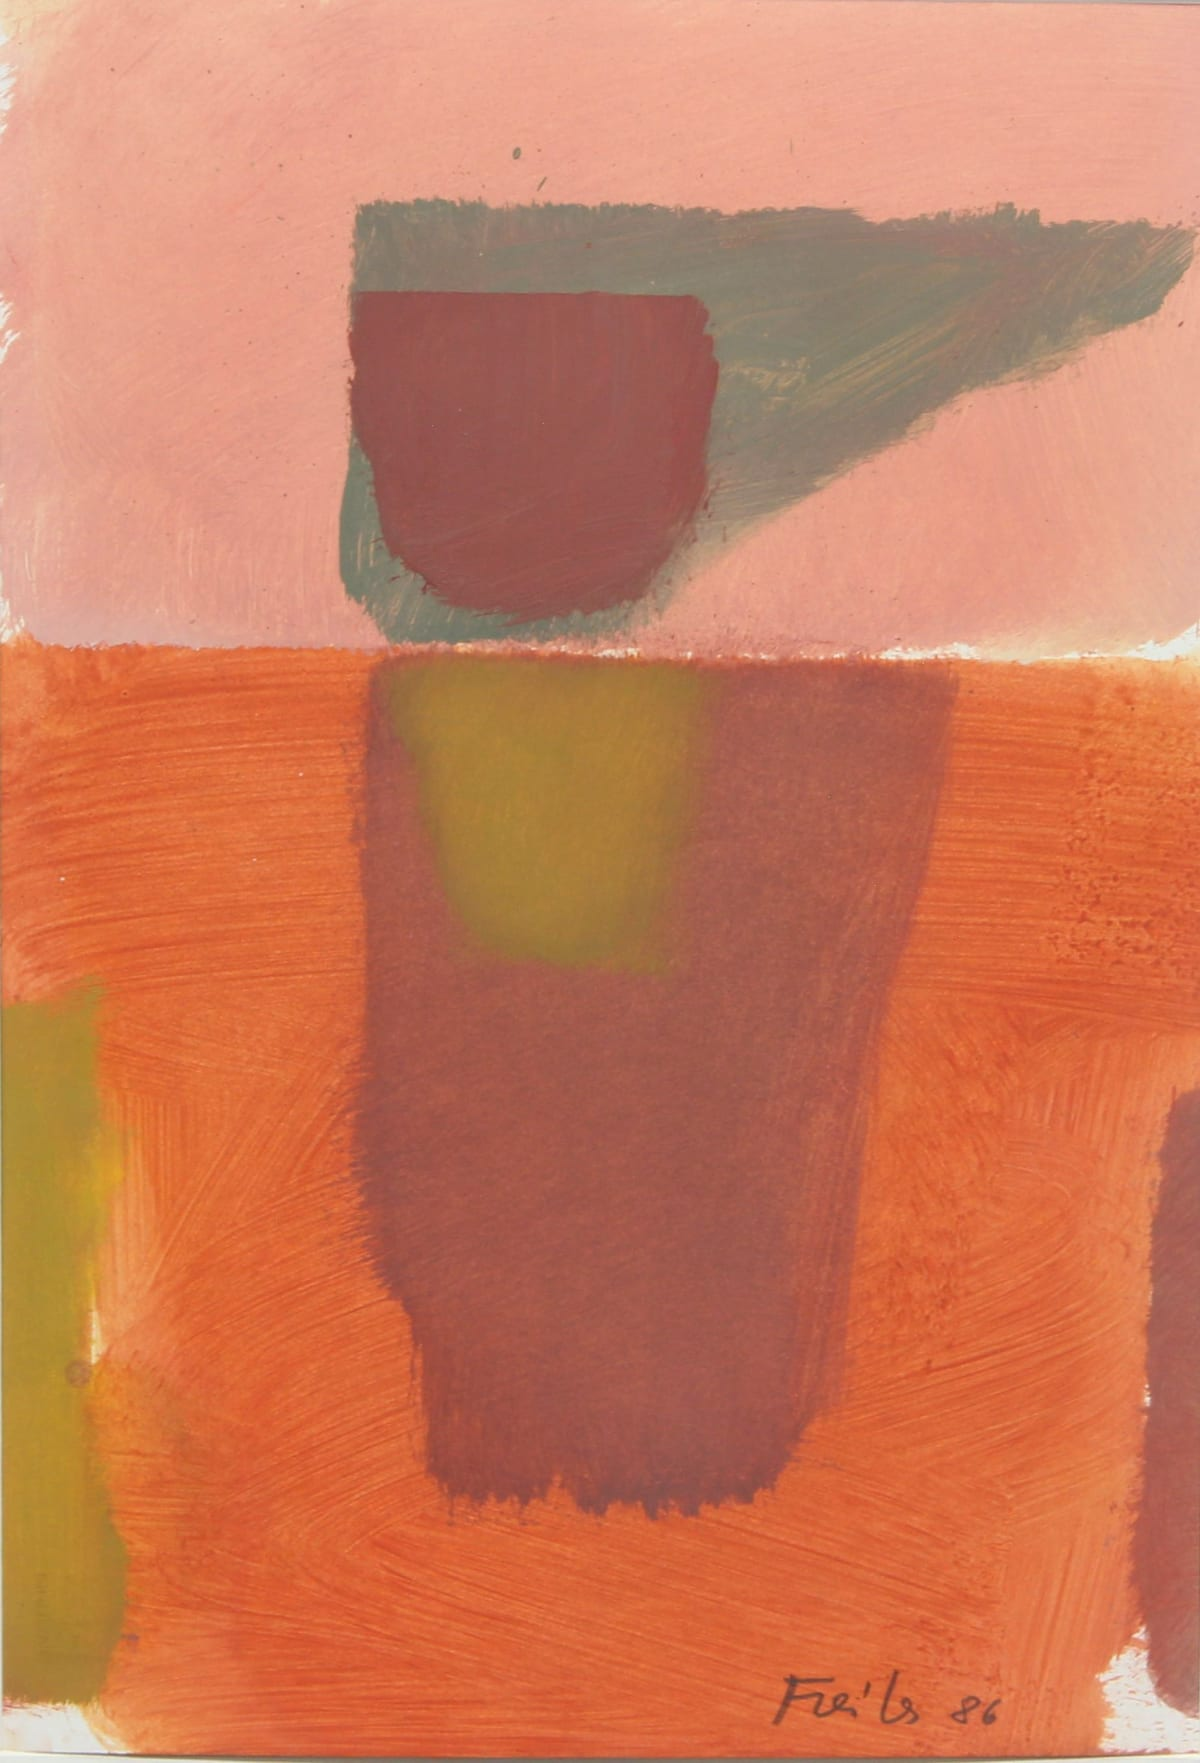 Antonio Freiles SENZA TITOLO, 1986 Oil on paper. 48 x 33 cm (18.9 x 13.0 in)